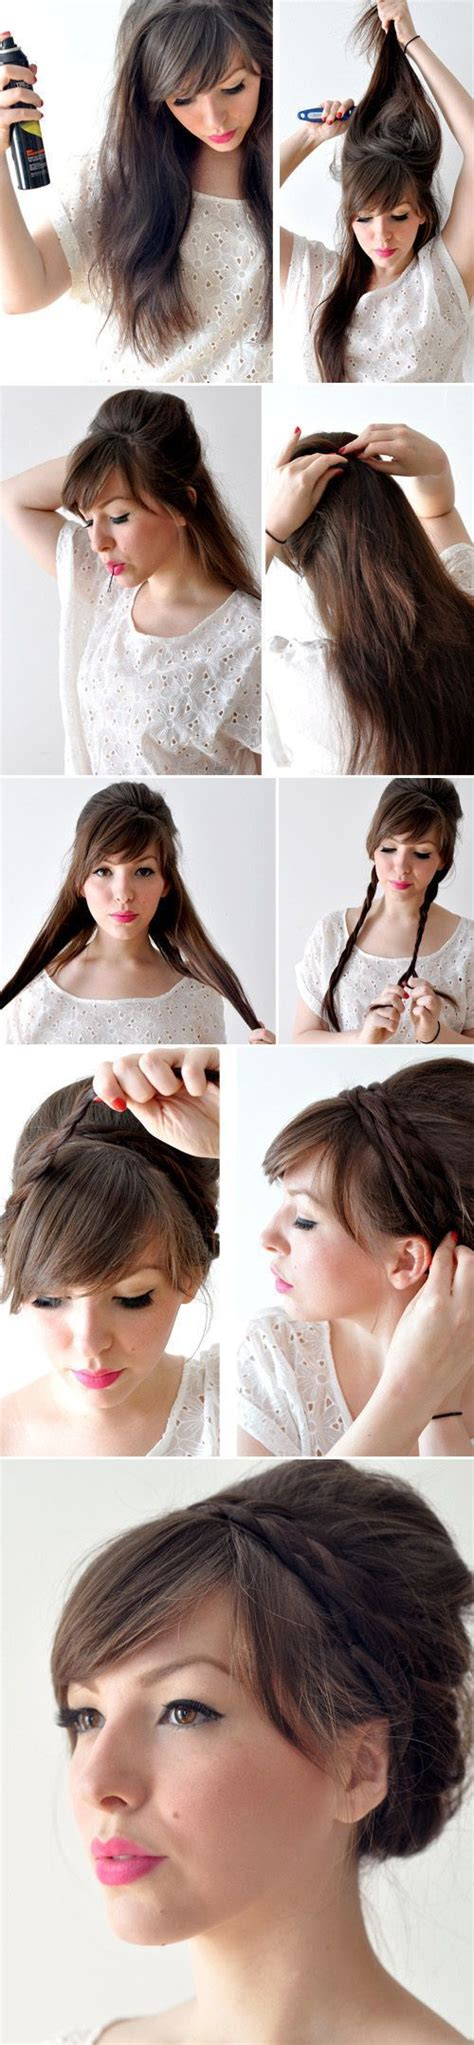 Easy Haircuts You Can Do At Home | creative hairstyles that you can easily do at home 27